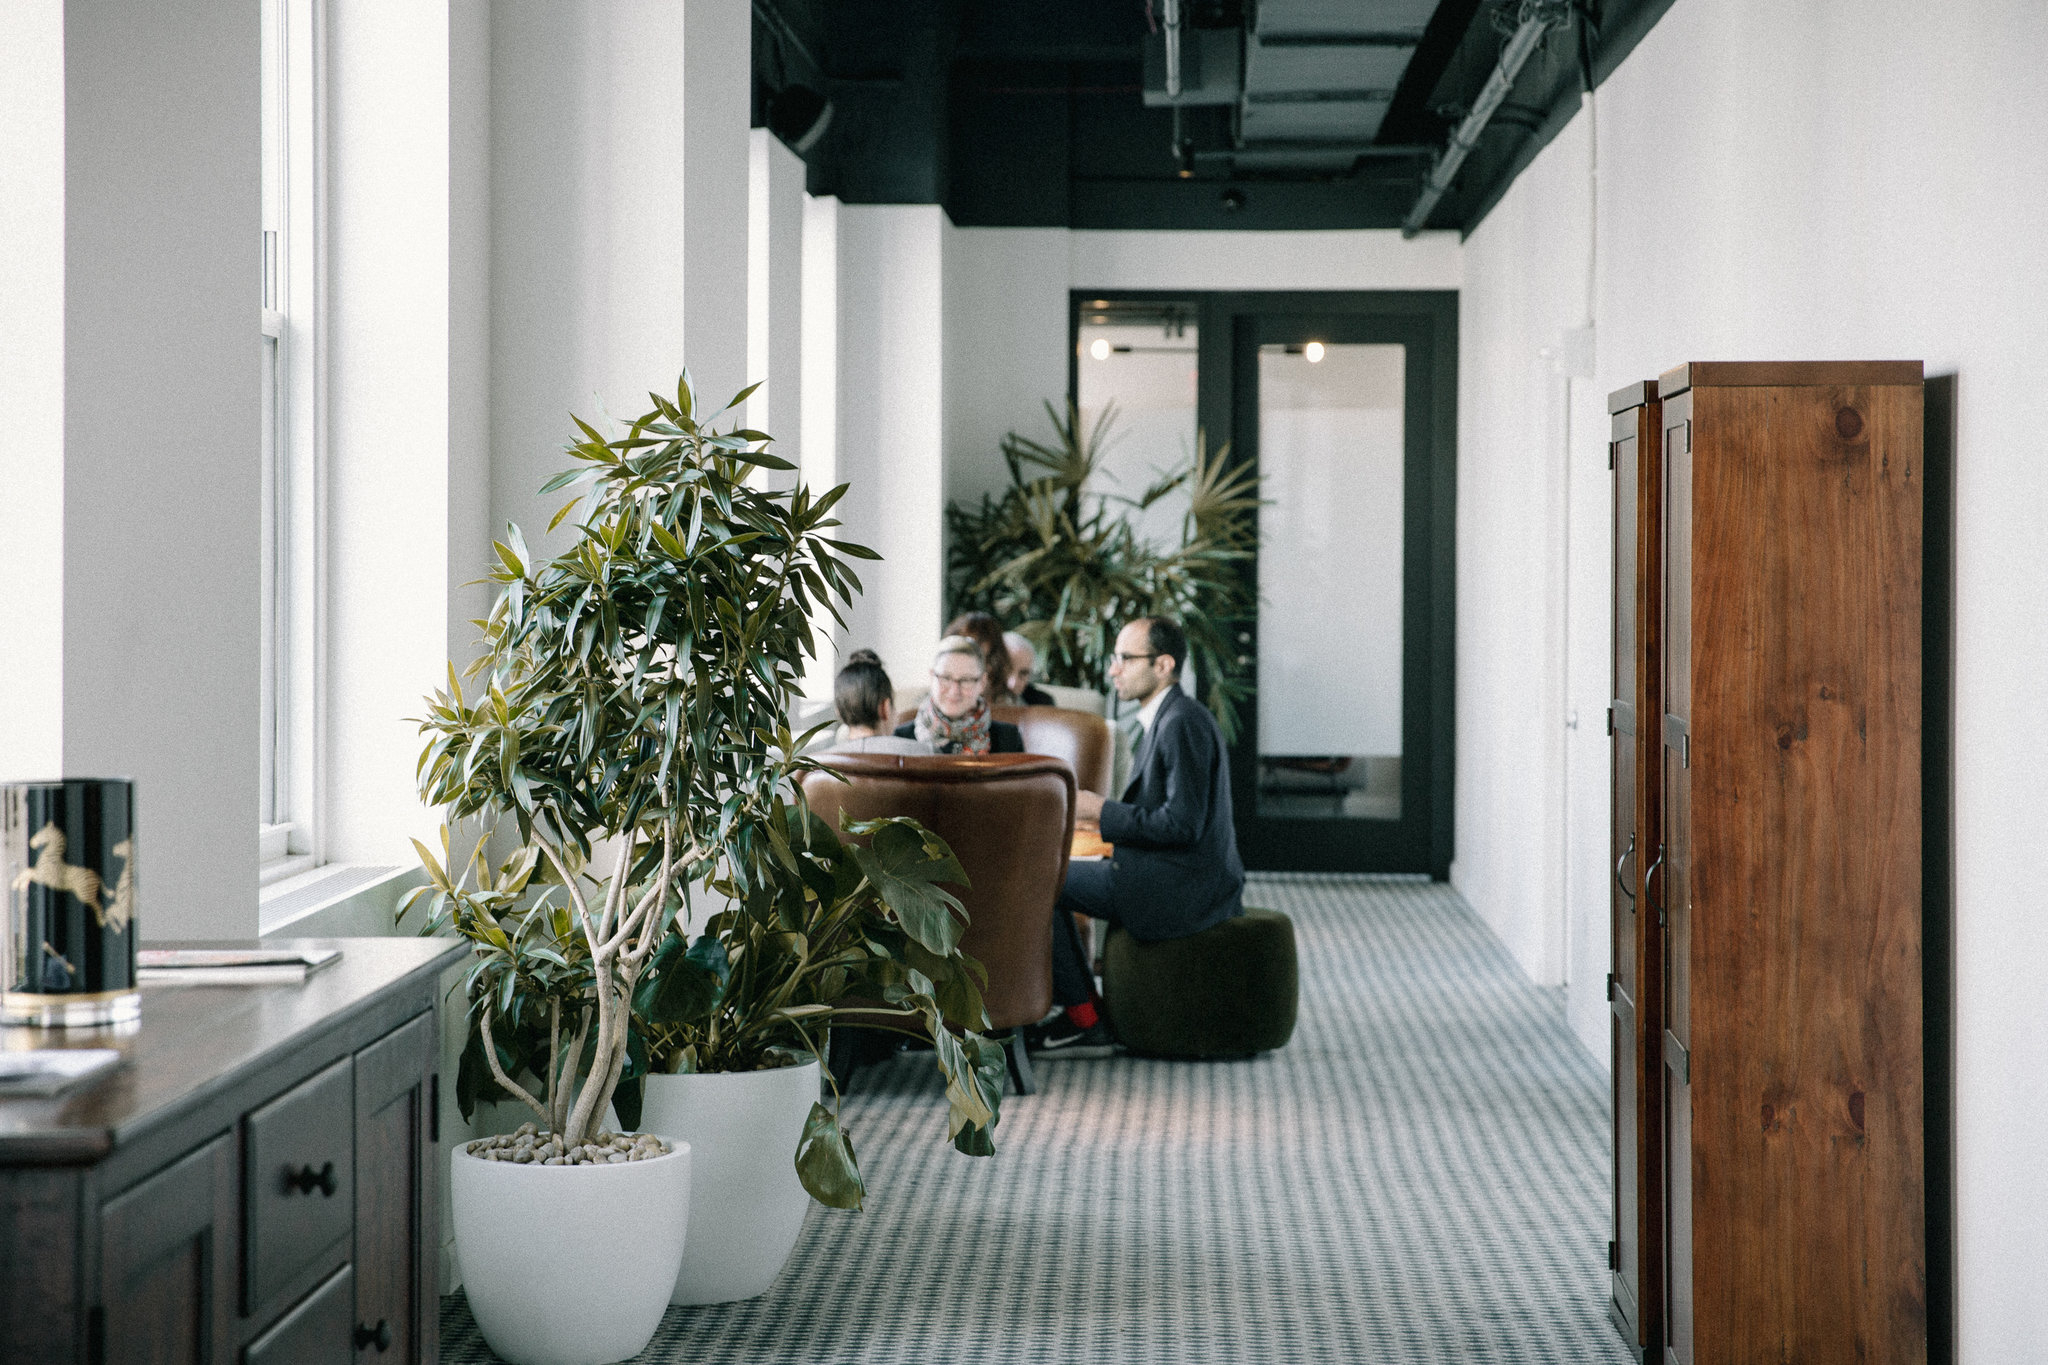 Office offbeat interior design Interiors Innovative In Bid To Fill Office Buildings Landlords Offer Kegs And Nap Rooms Offbeat Empire Offbeat In Bid To Fill Office Buildings Landlords Offer Kegs And